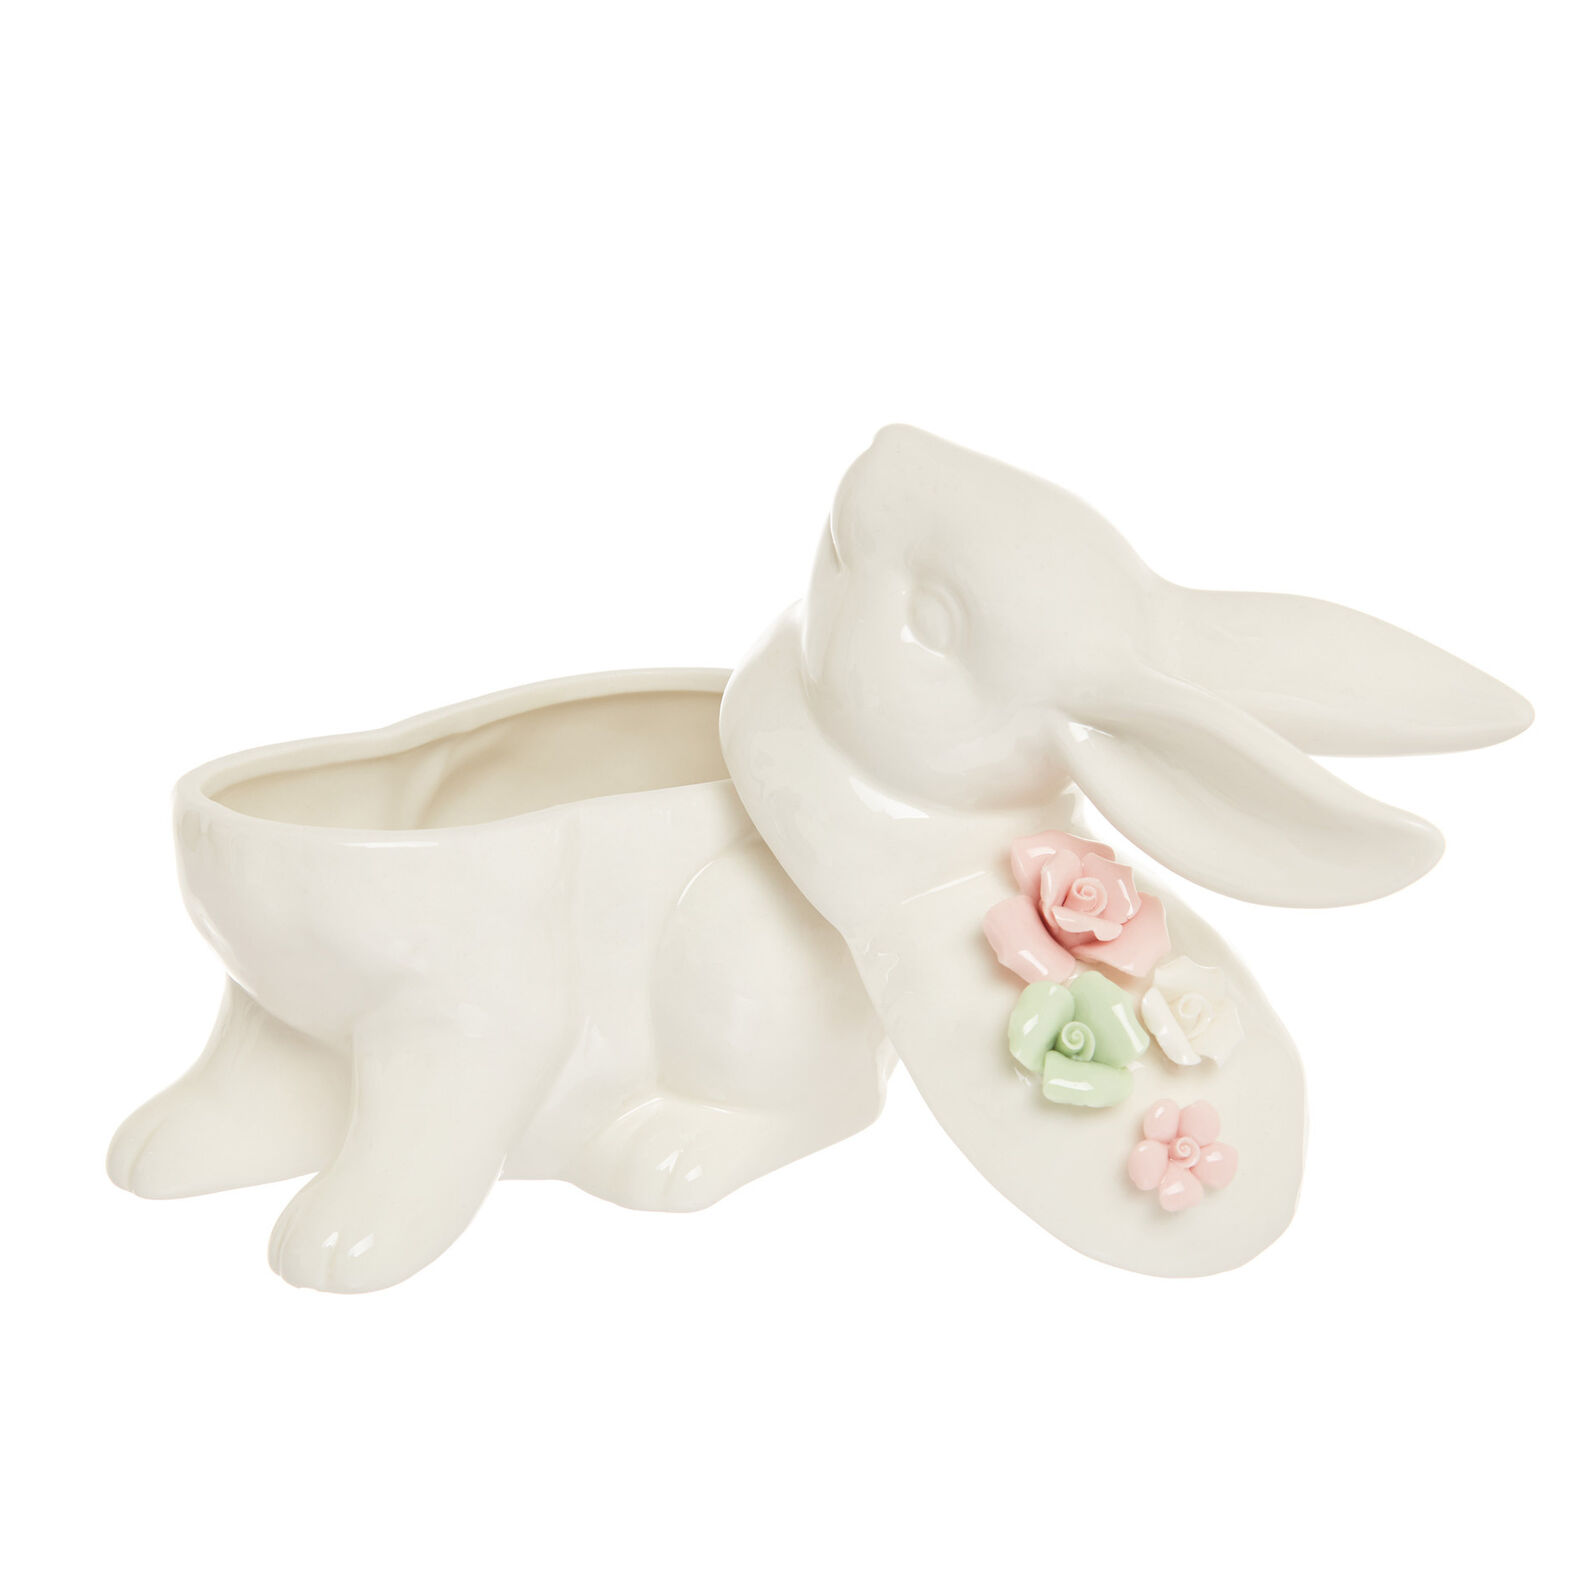 Porcelain rabbit jar